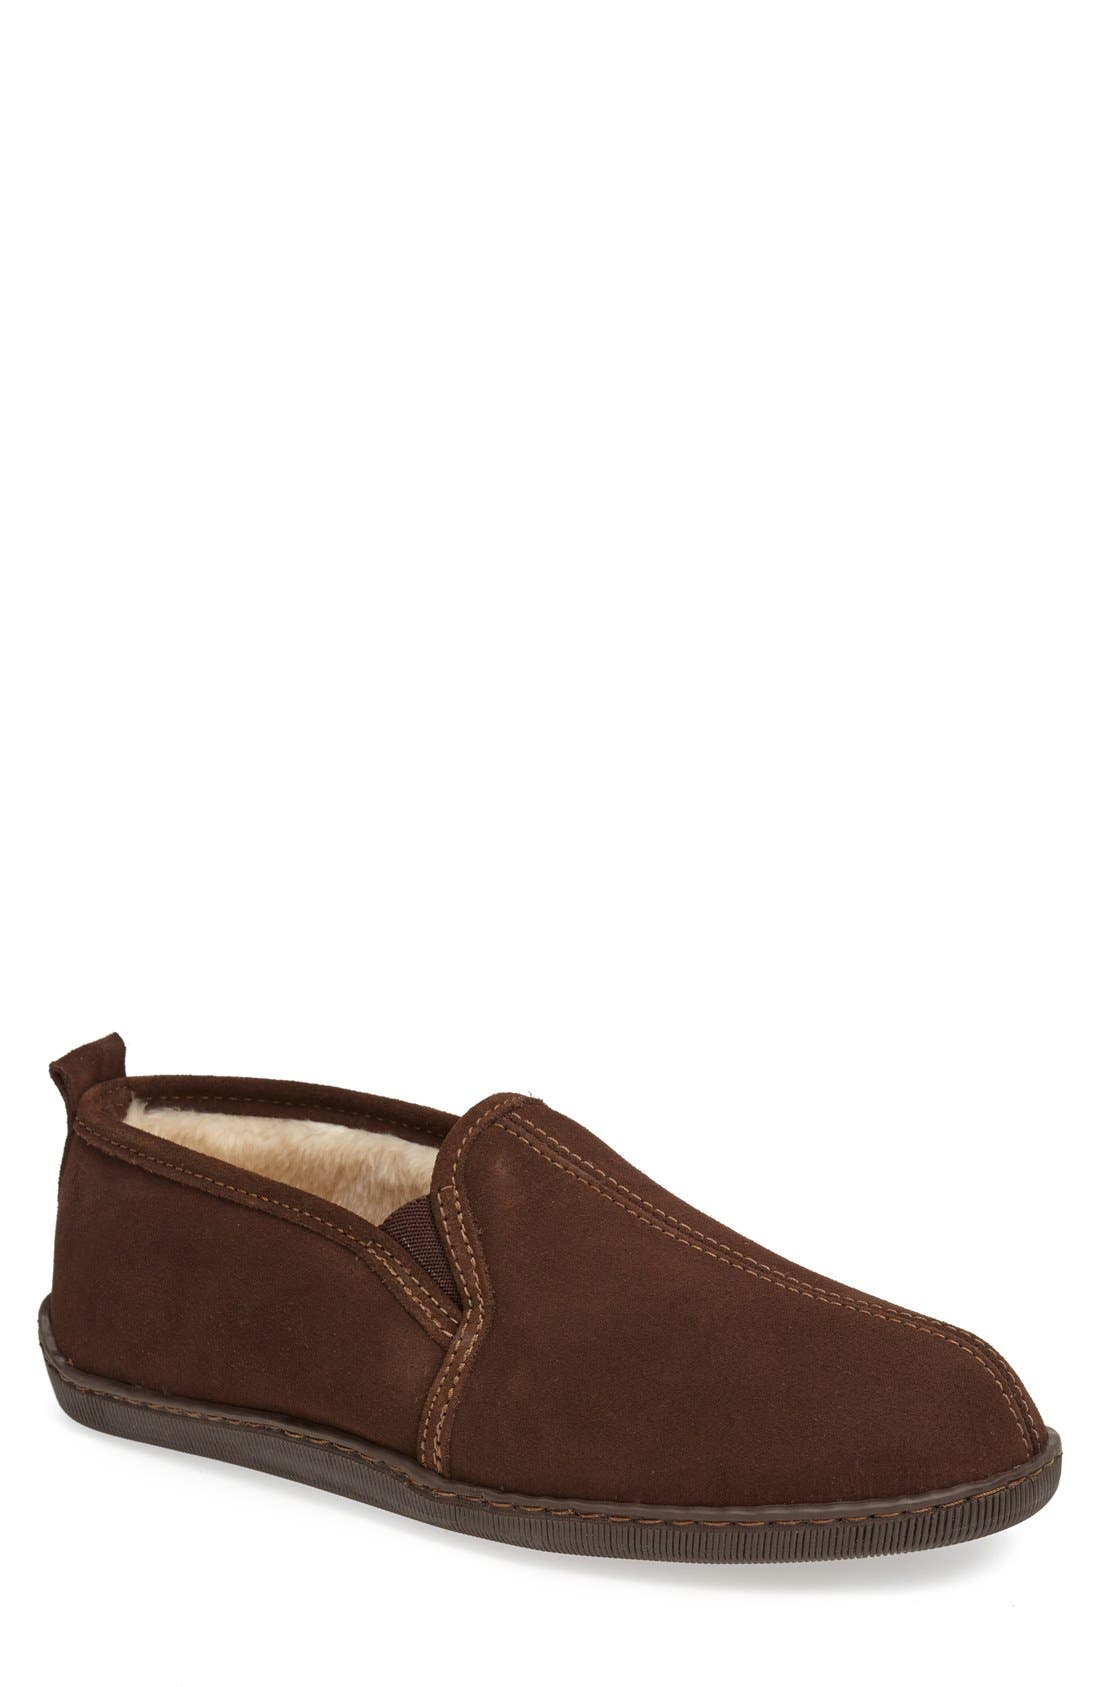 Suede Slipper,                         Main,                         color, Chocolate